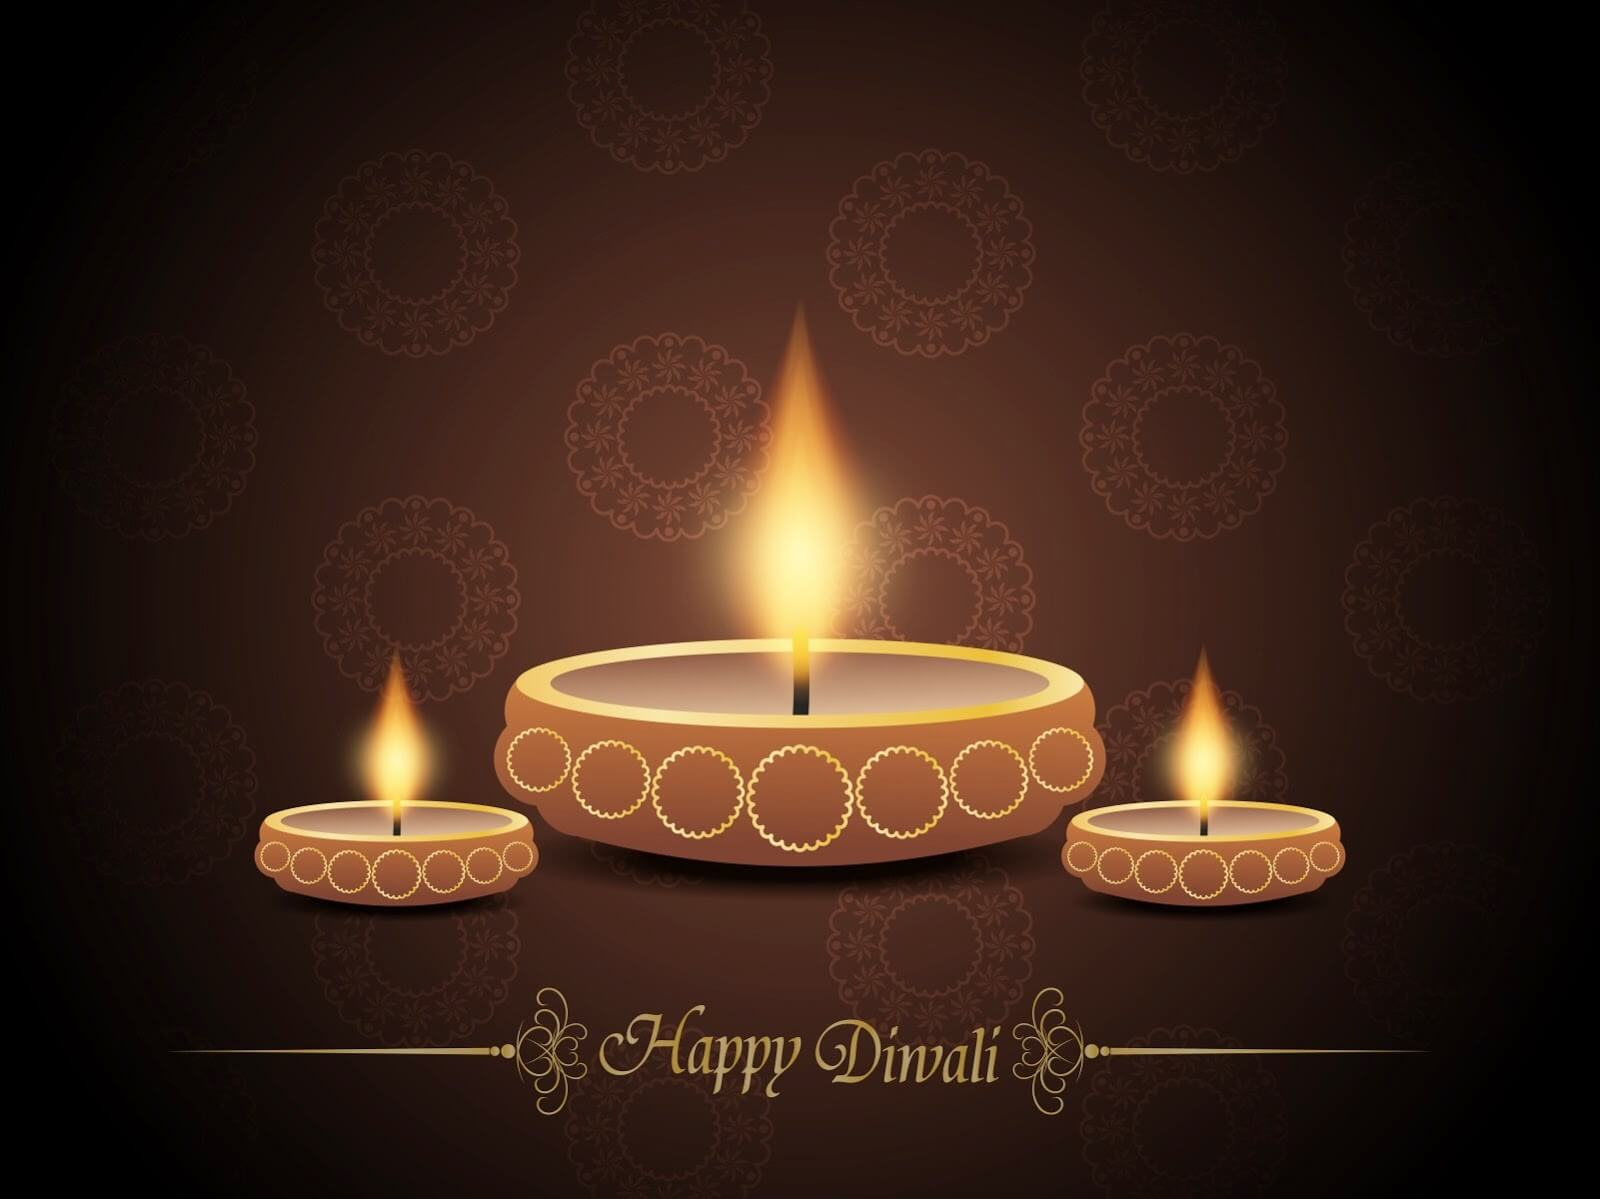 Happy Diwali Wallpaper with Diyas